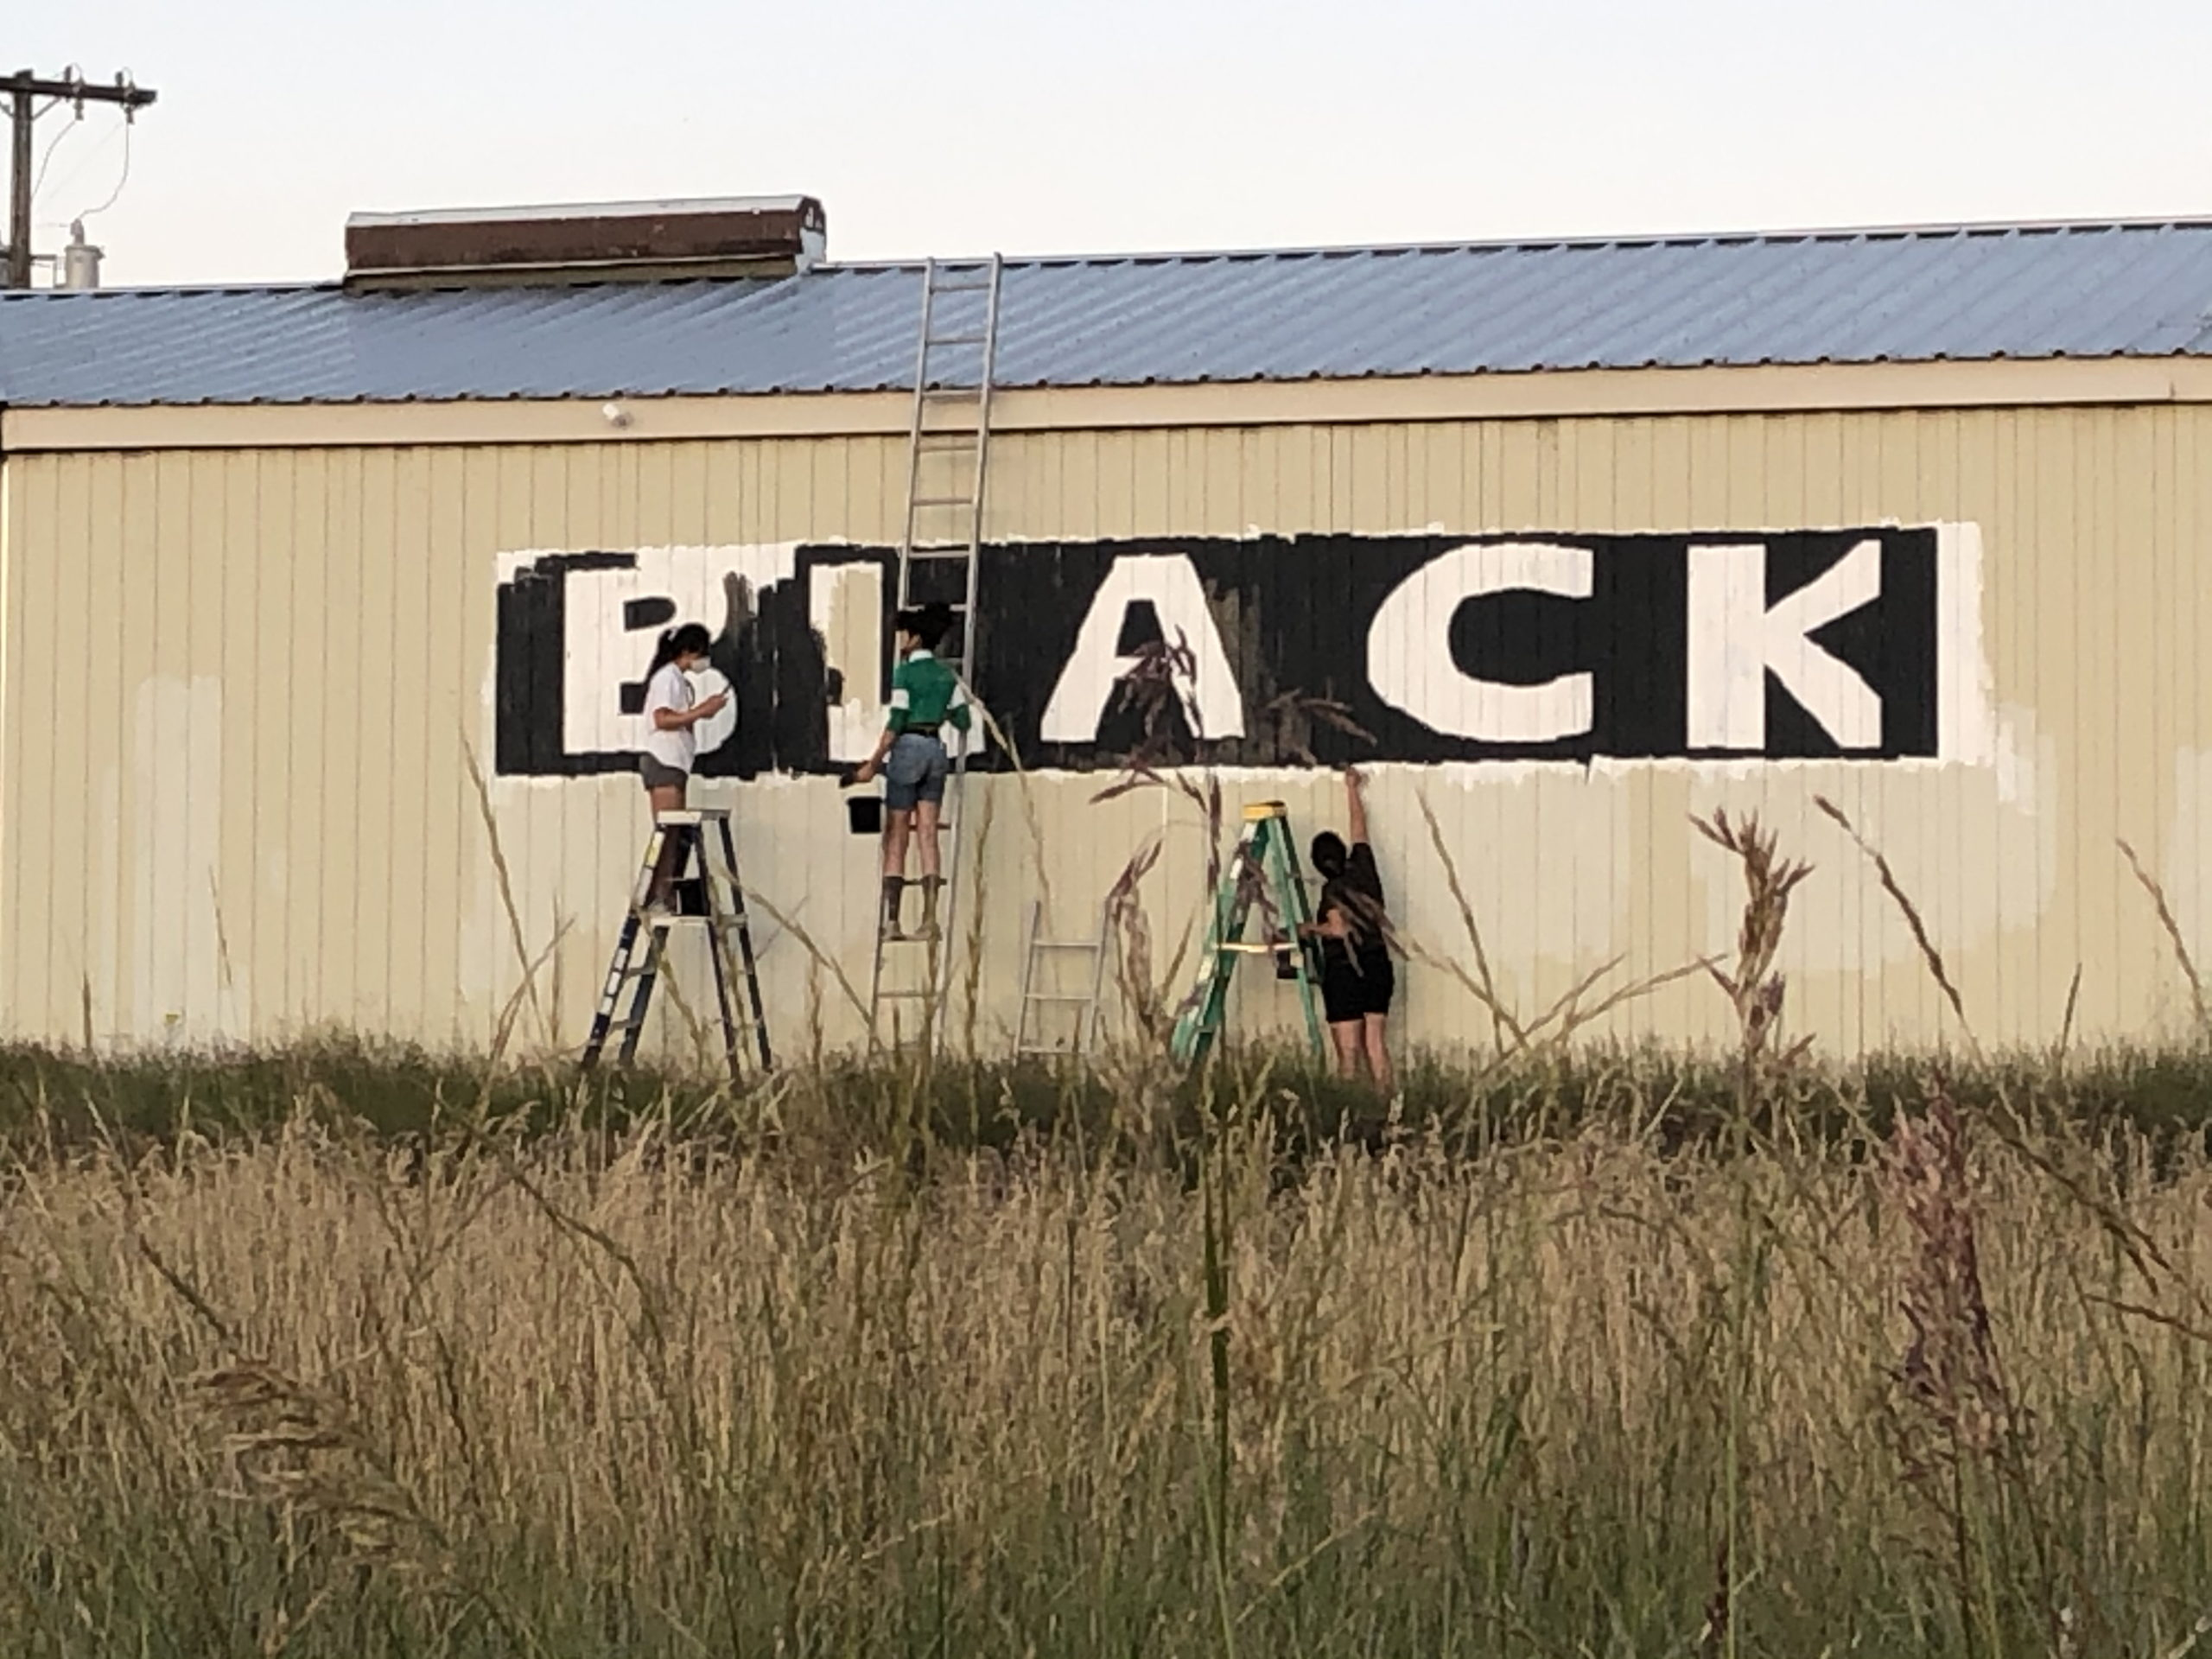 Three kids on ladders painting a Black Lives Matter sign